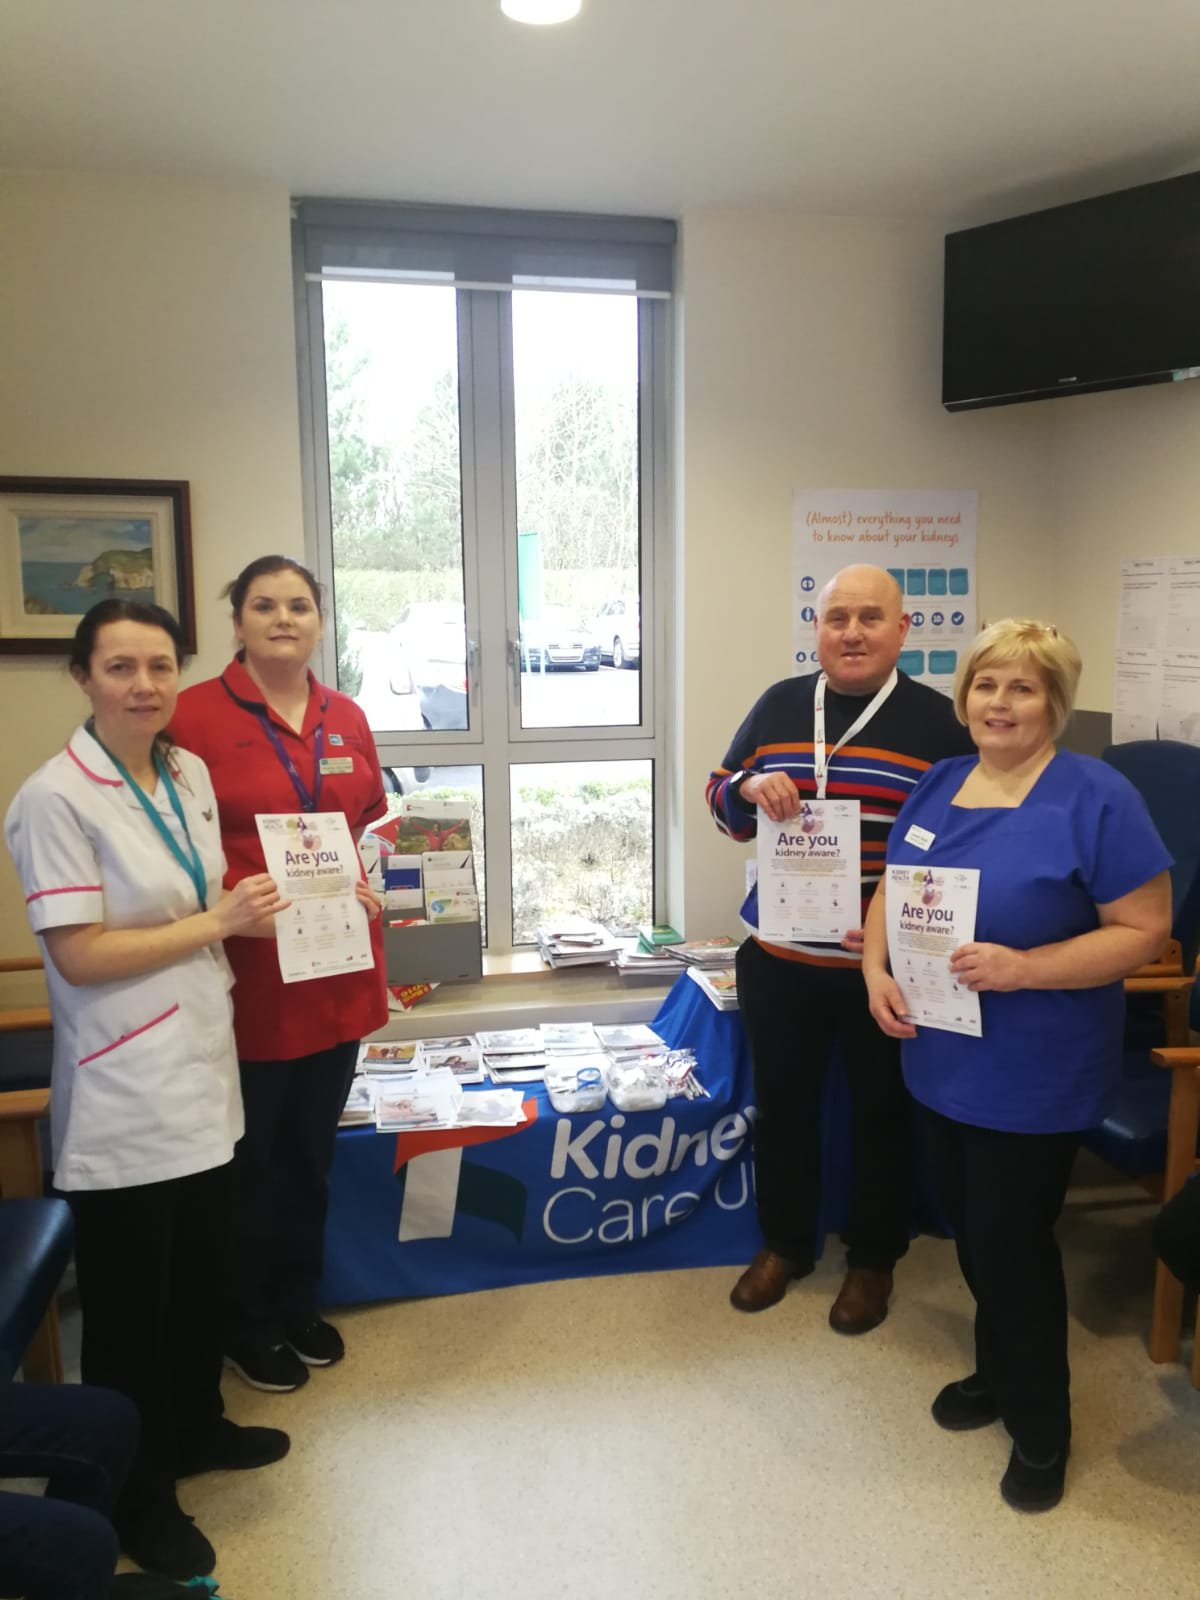 WKD - Antrim Renal Unit with Toni McCaig, Natasha McCullough, William Johnstone, and Louise Sloane